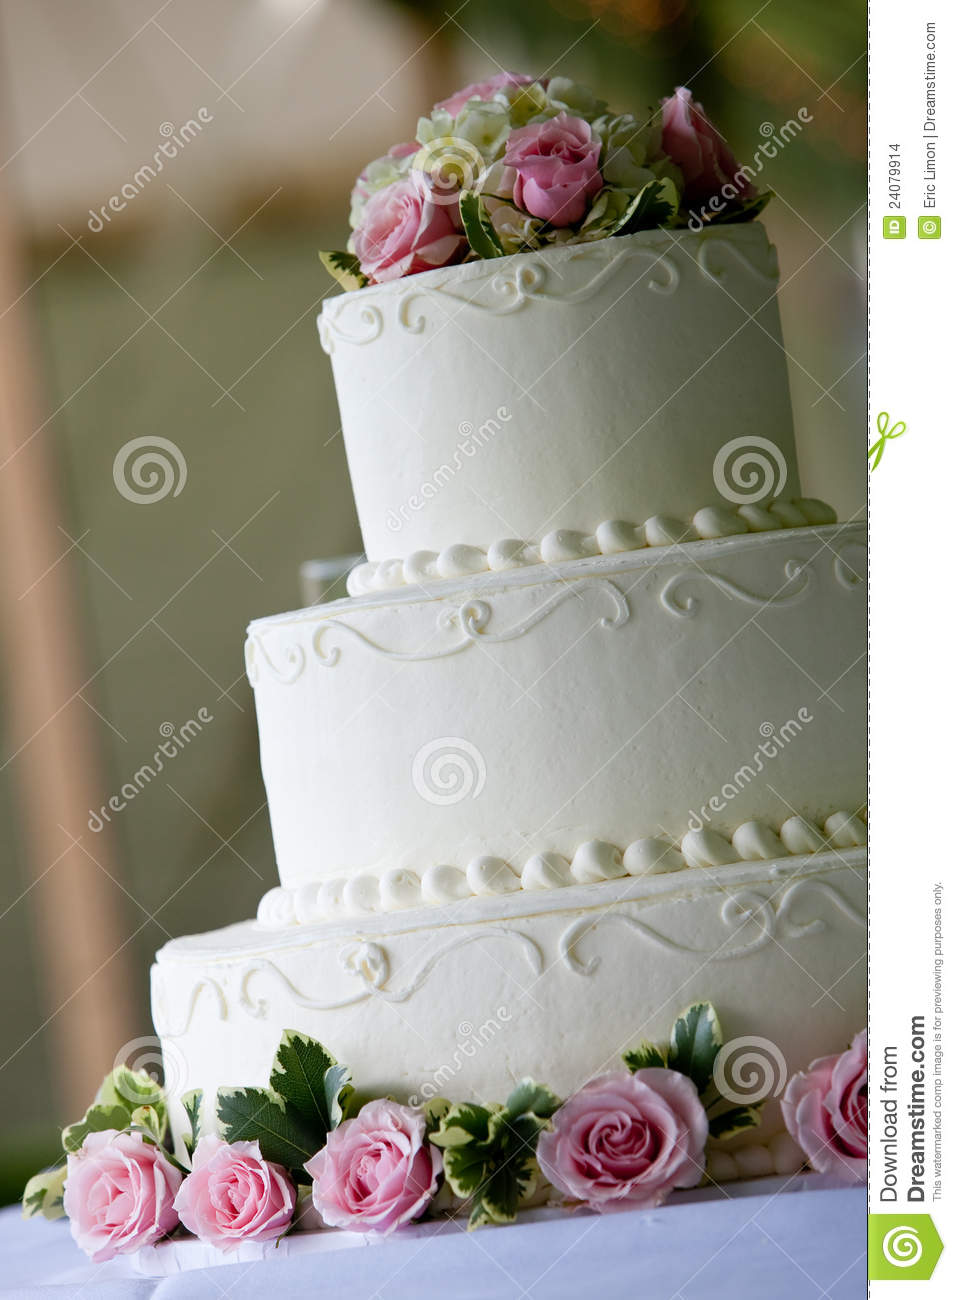 White Wedding Cake With Pink Flowers Stock Photo - Image of ...